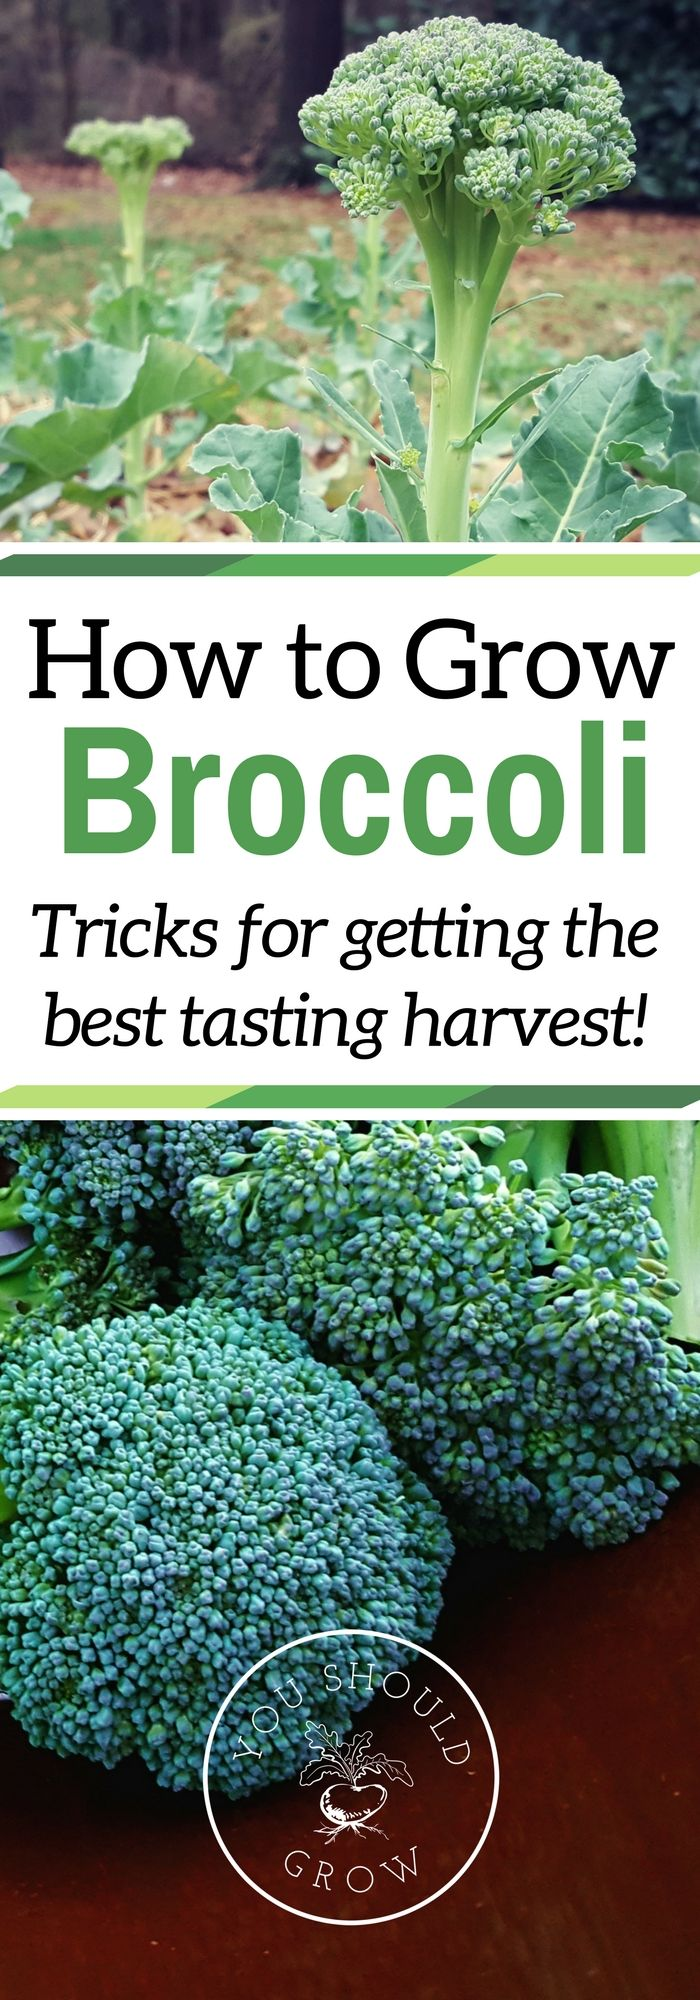 If you've had trouble growing broccoli before, read these tips for getting a tasty crop. Grow your own delicious broccoli in your garden. via @Laura @ You Should Grow ~ A Vegetable Gardening Blog